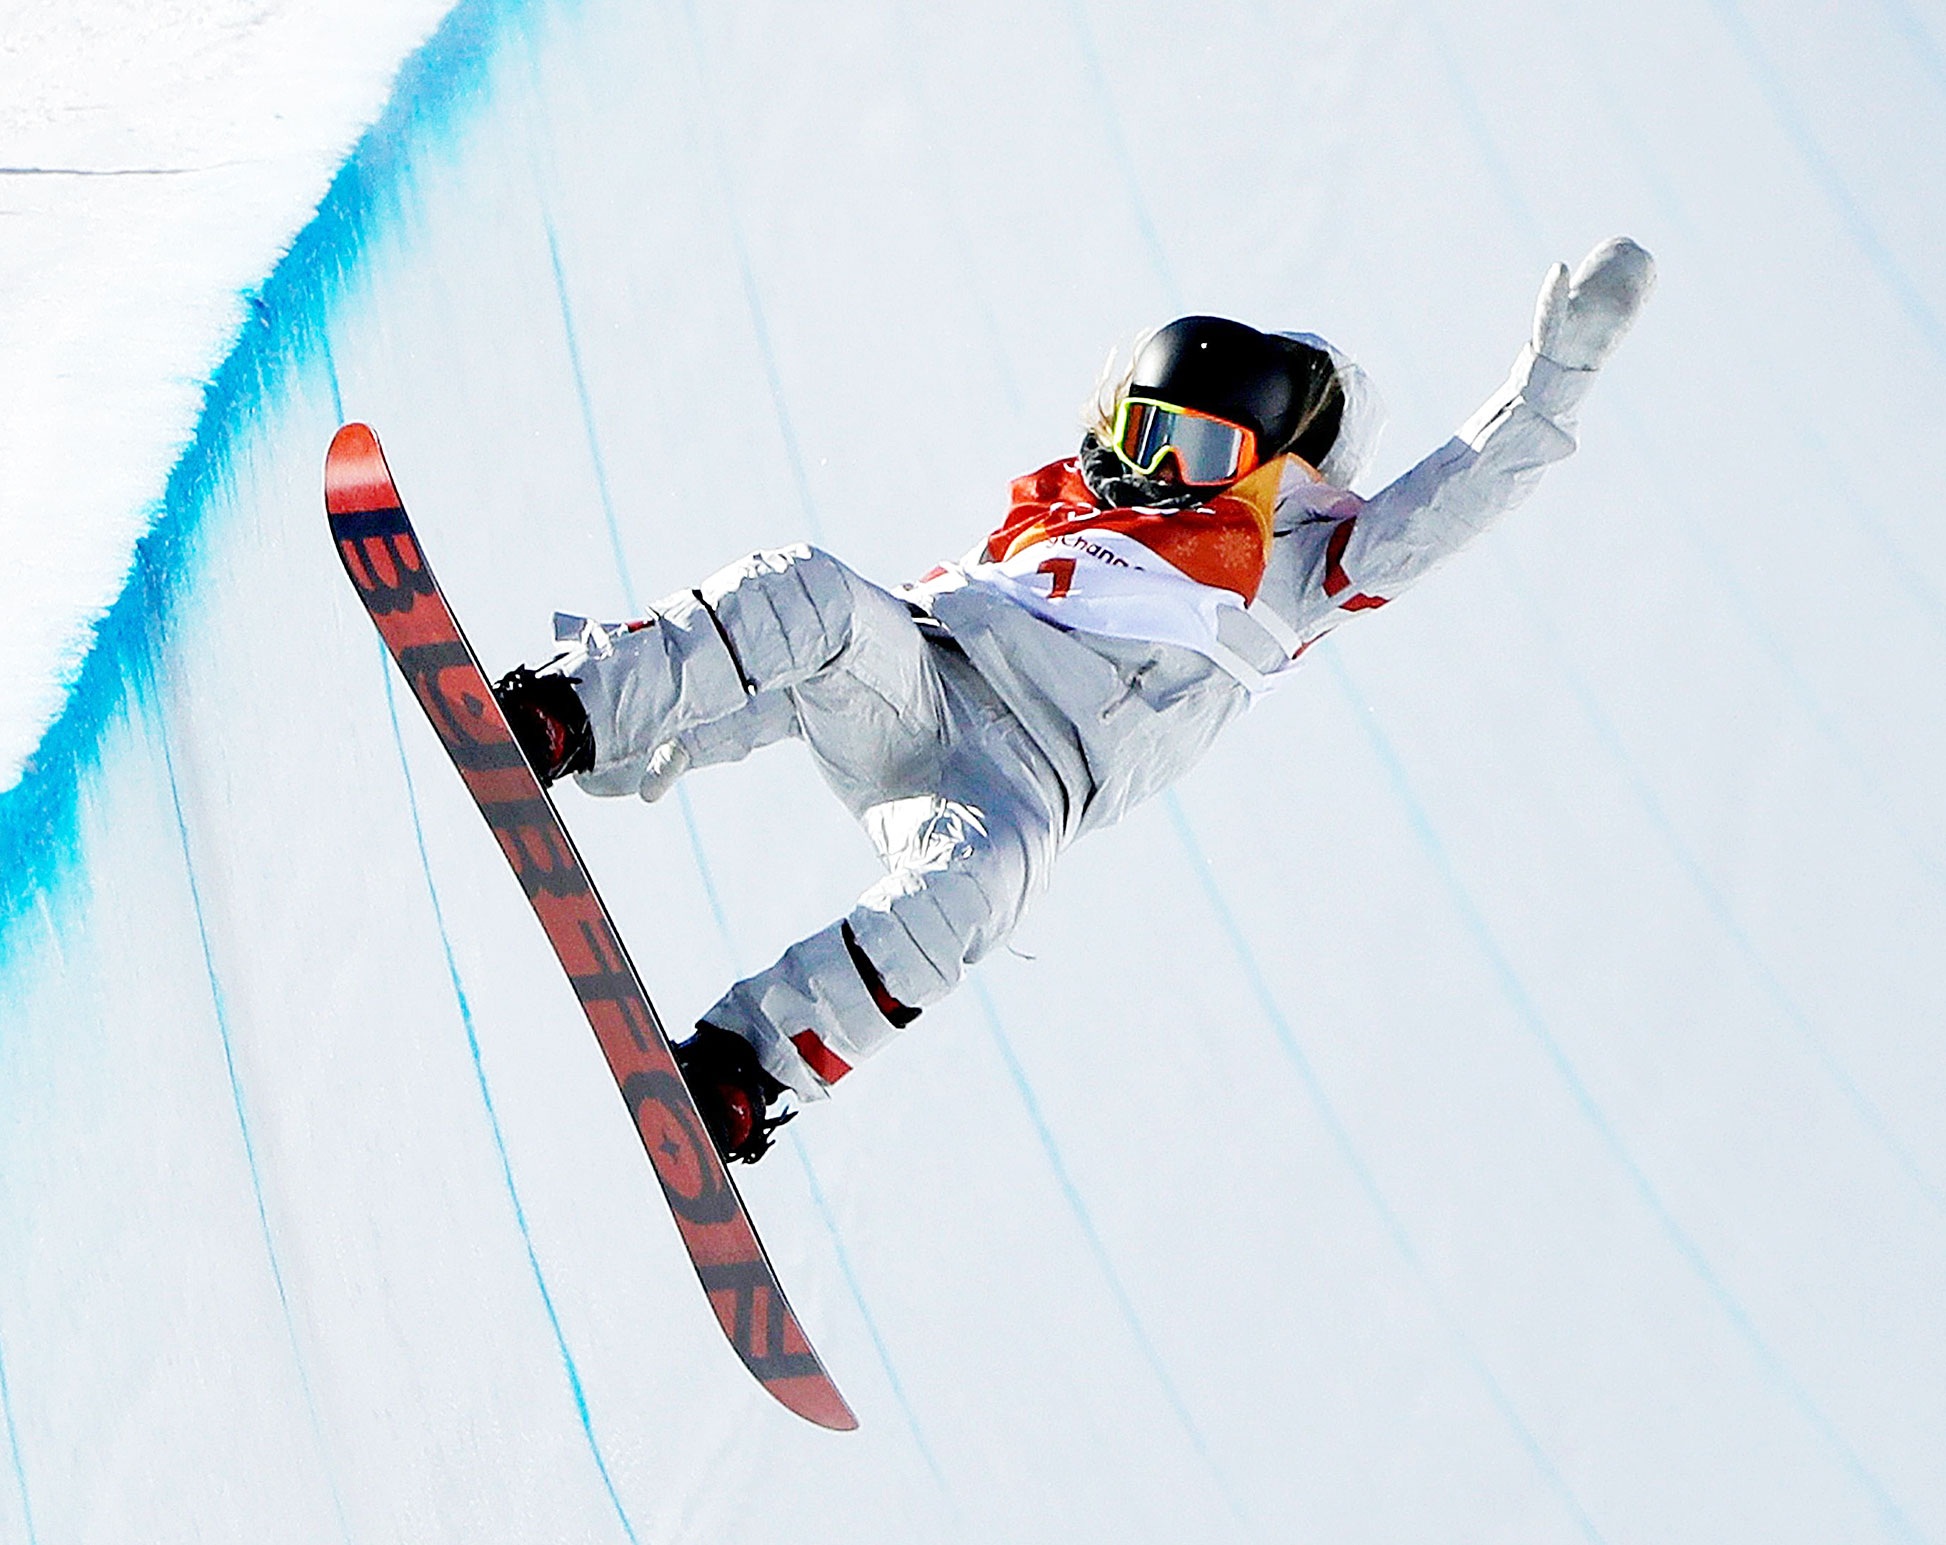 Chloe Kim During the Womens Halfpipe Finals at the 2018 Winter Olympic Games